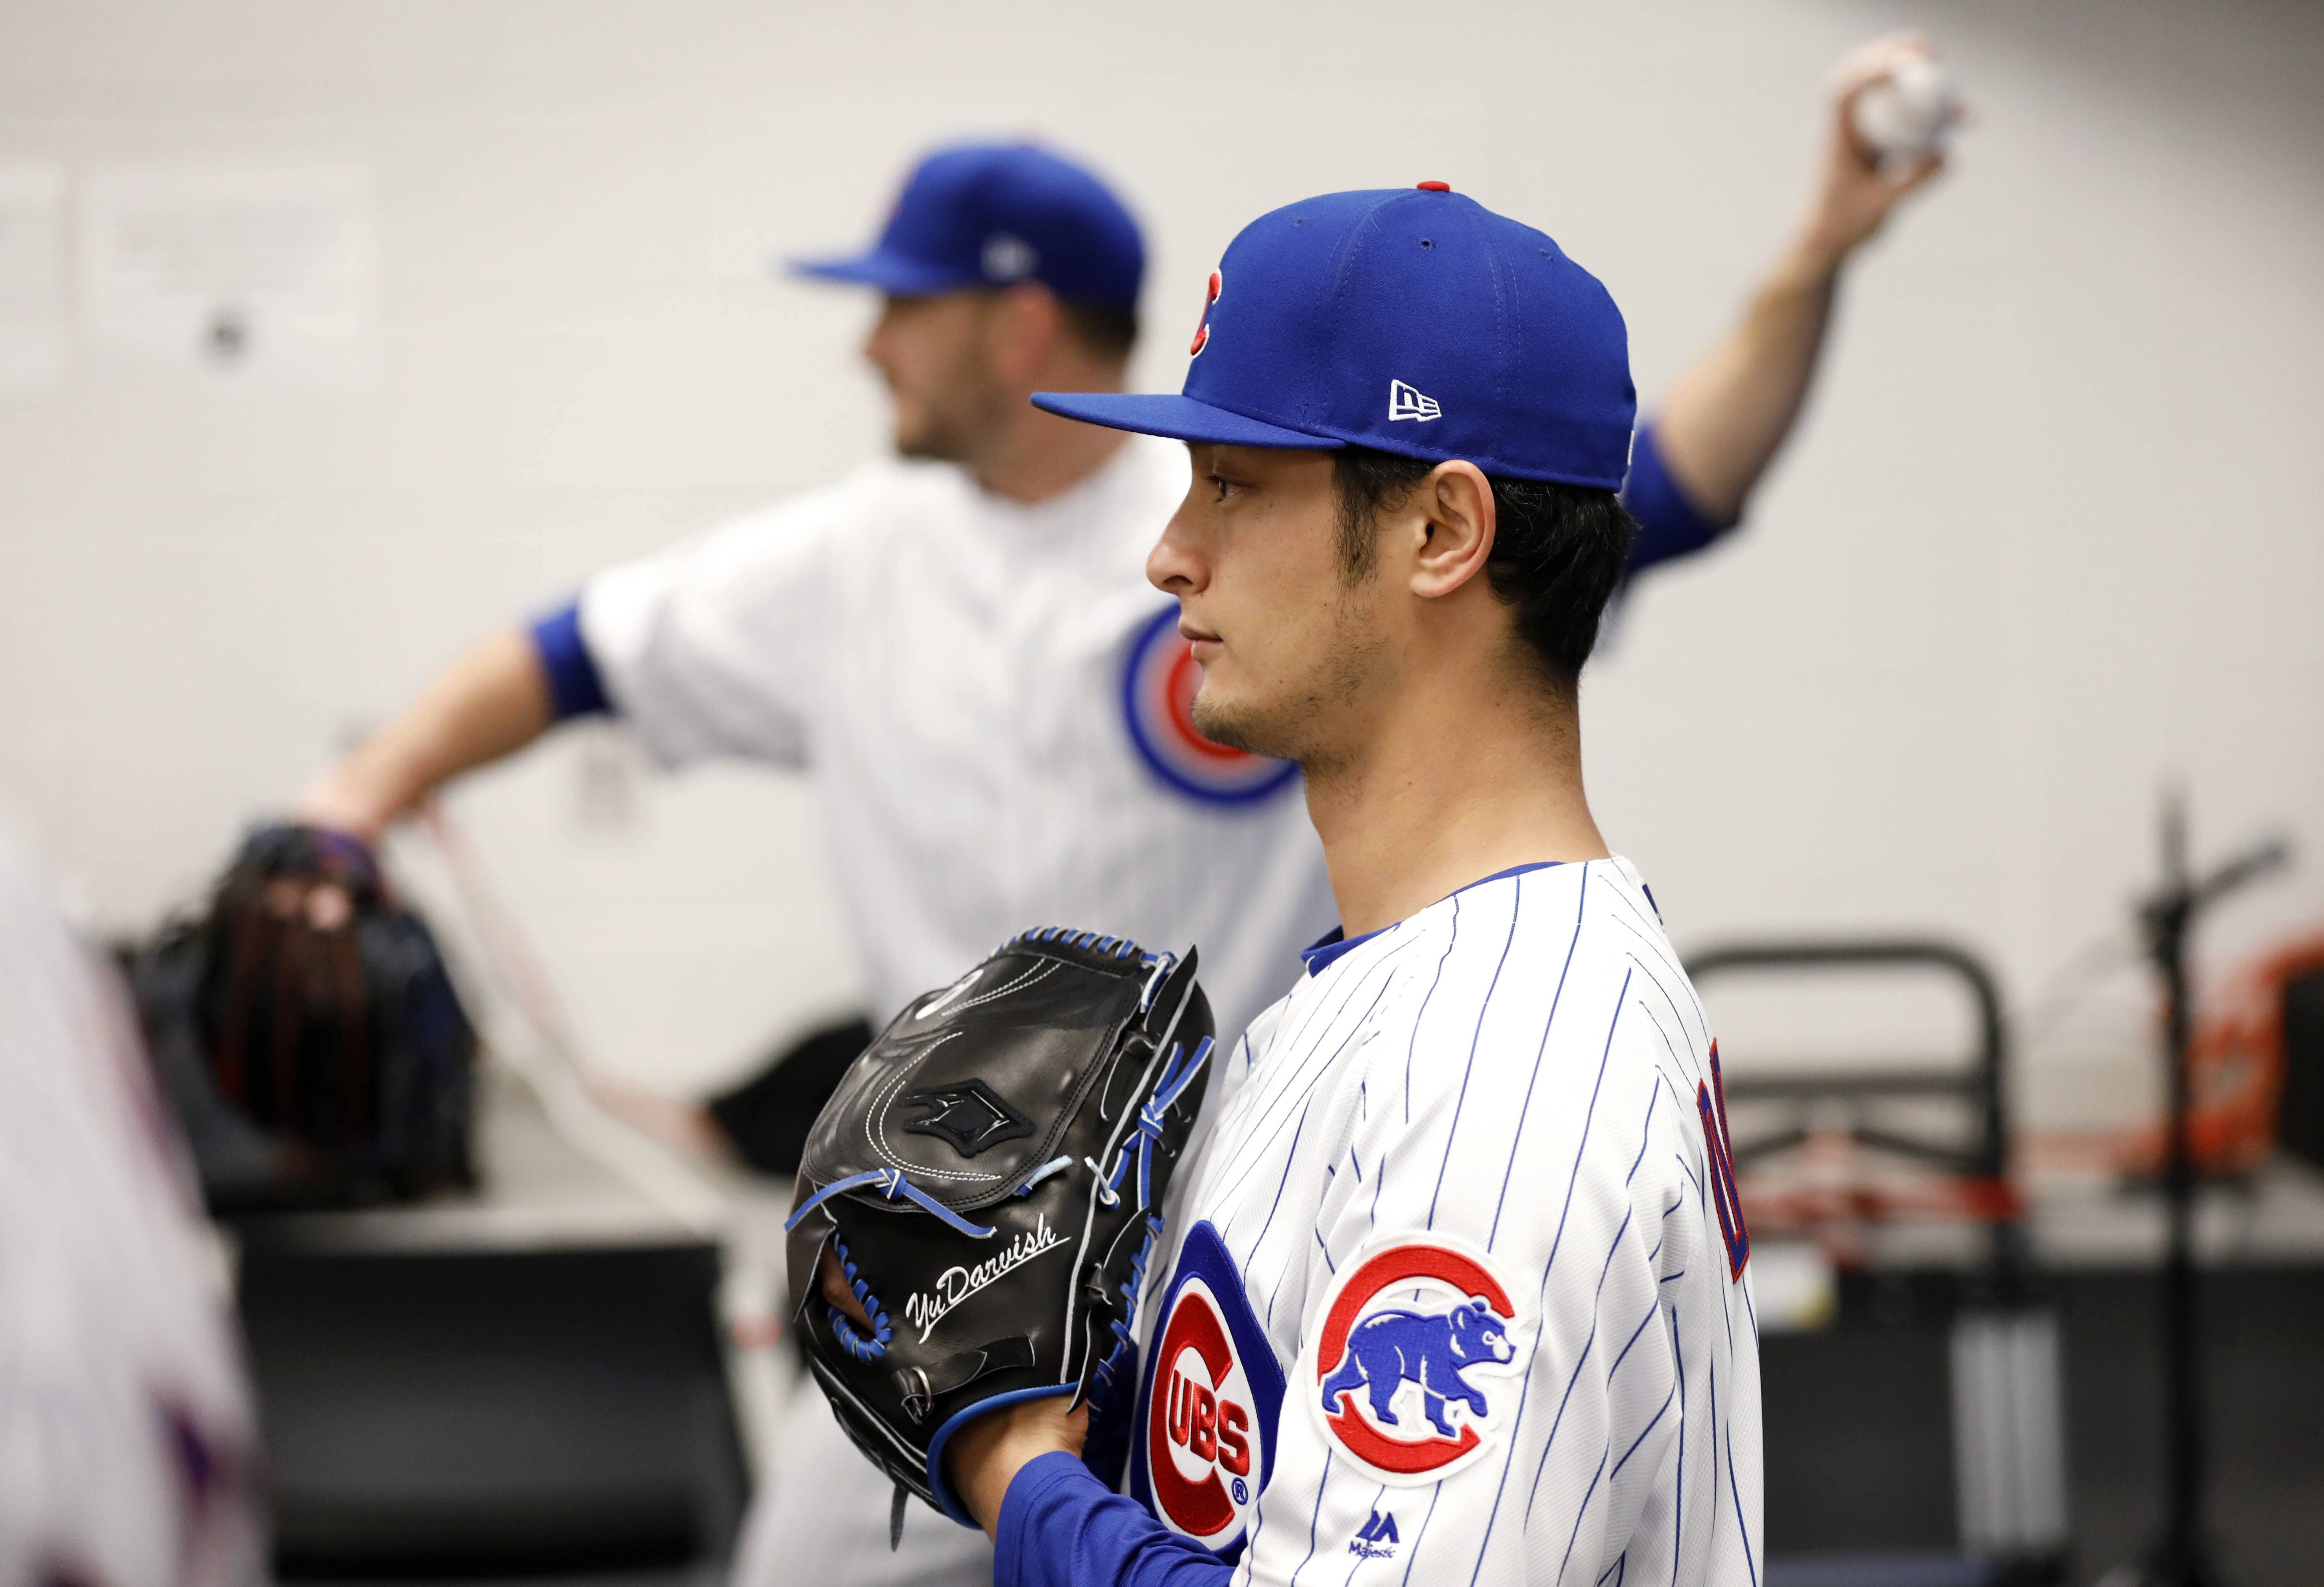 It was picture day at Chicago Cubs camp on Tuesday, and pitcher Yu Darvish, posing for the camera here, also painted quite a picture when he threw a live batting practice session during spring training workouts in Mesa, Ariz.